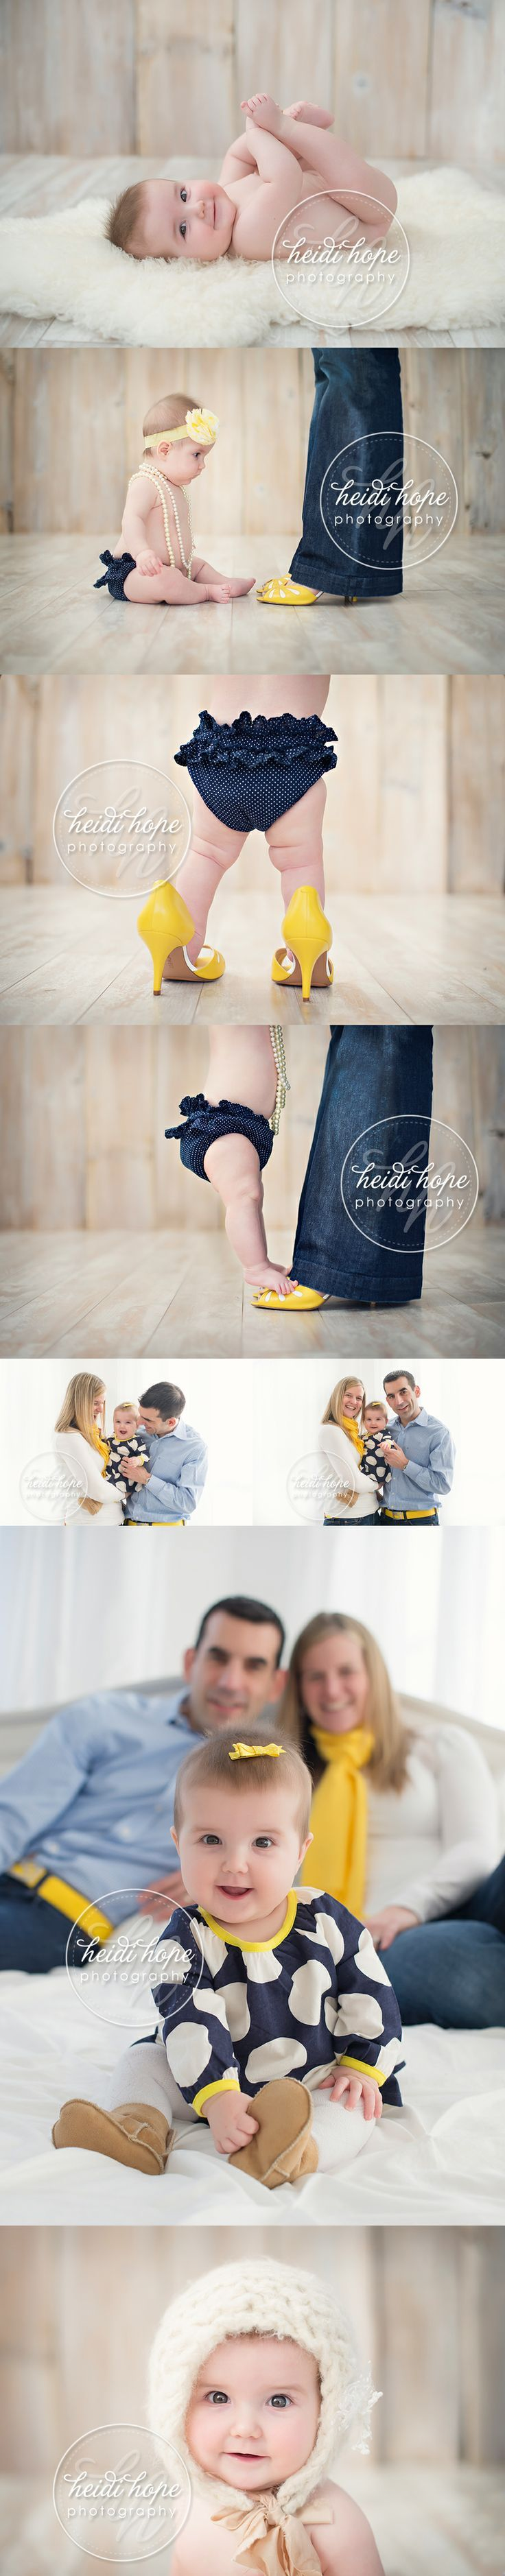 6 month old baby H and family visit the   studio for a Pinterest worthy baby portrait session! - Heidi Hope   Photography